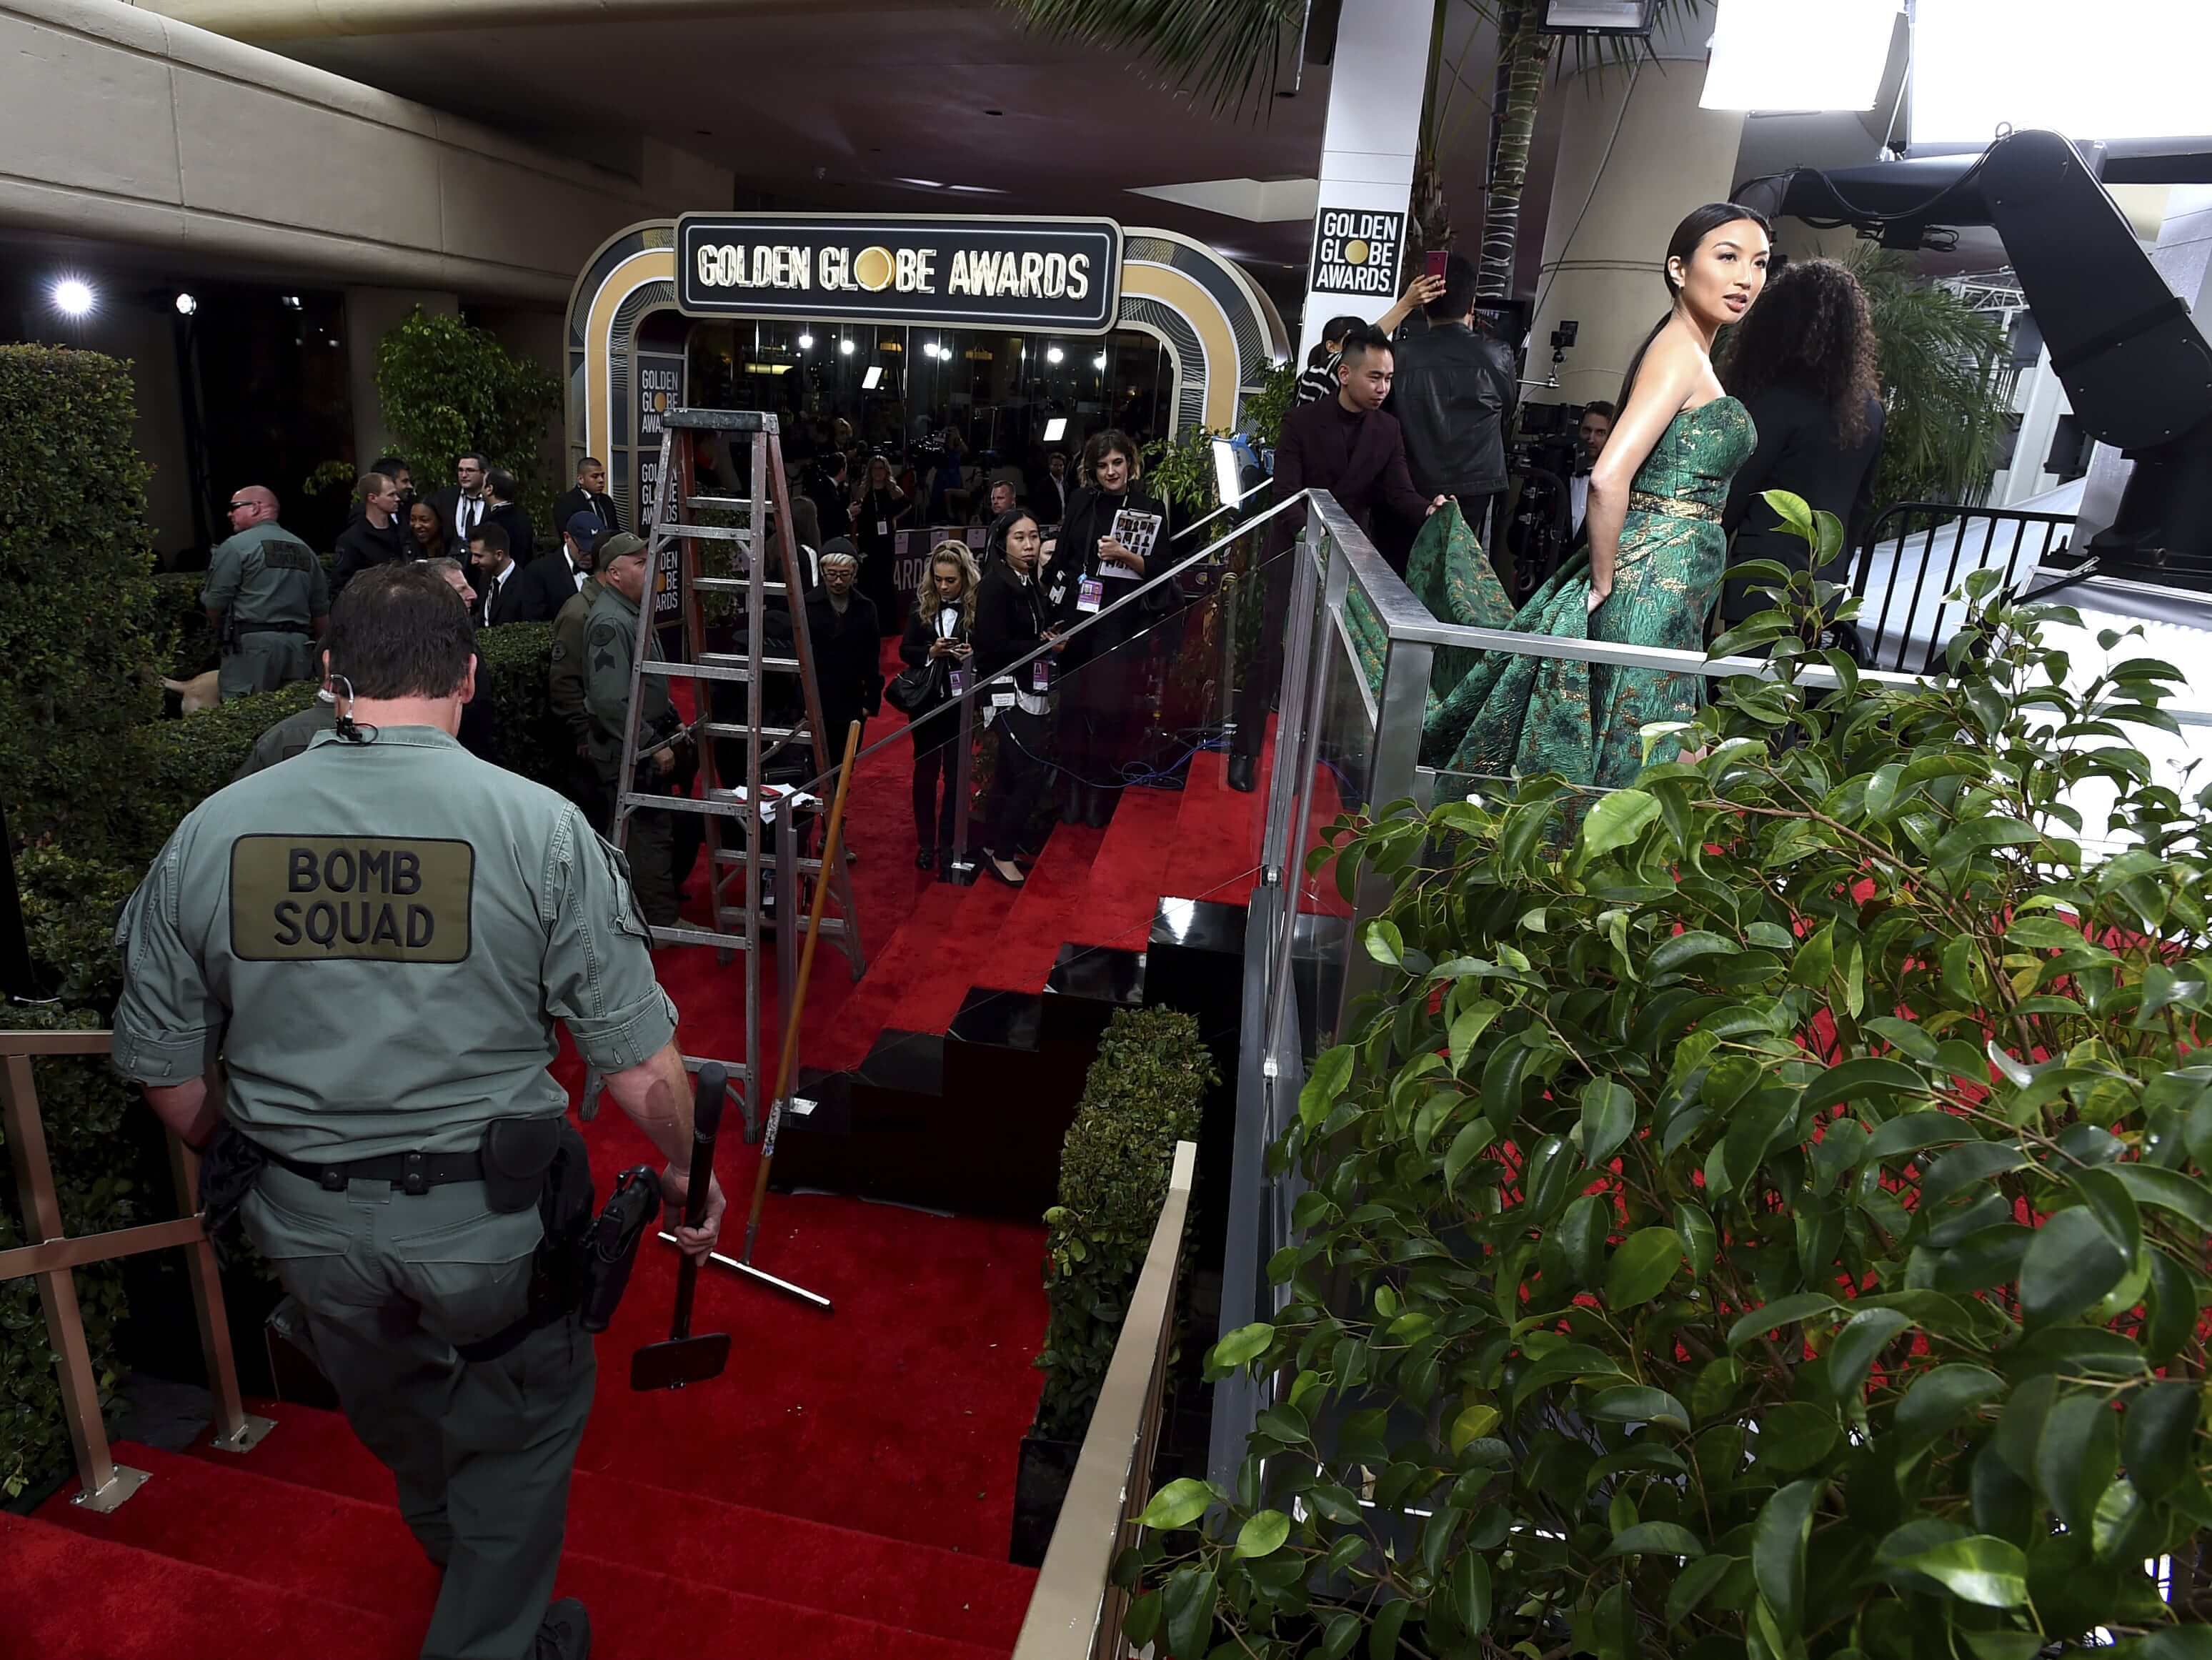 Law enforcement performs a security sweep of the red carpet as Jeannie Mai prepares for the arrivals at the 76th annual Golden Globe Awards at the Beverly Hilton Hotel on Jan. 6, 2019, in Beverly Hills, California.